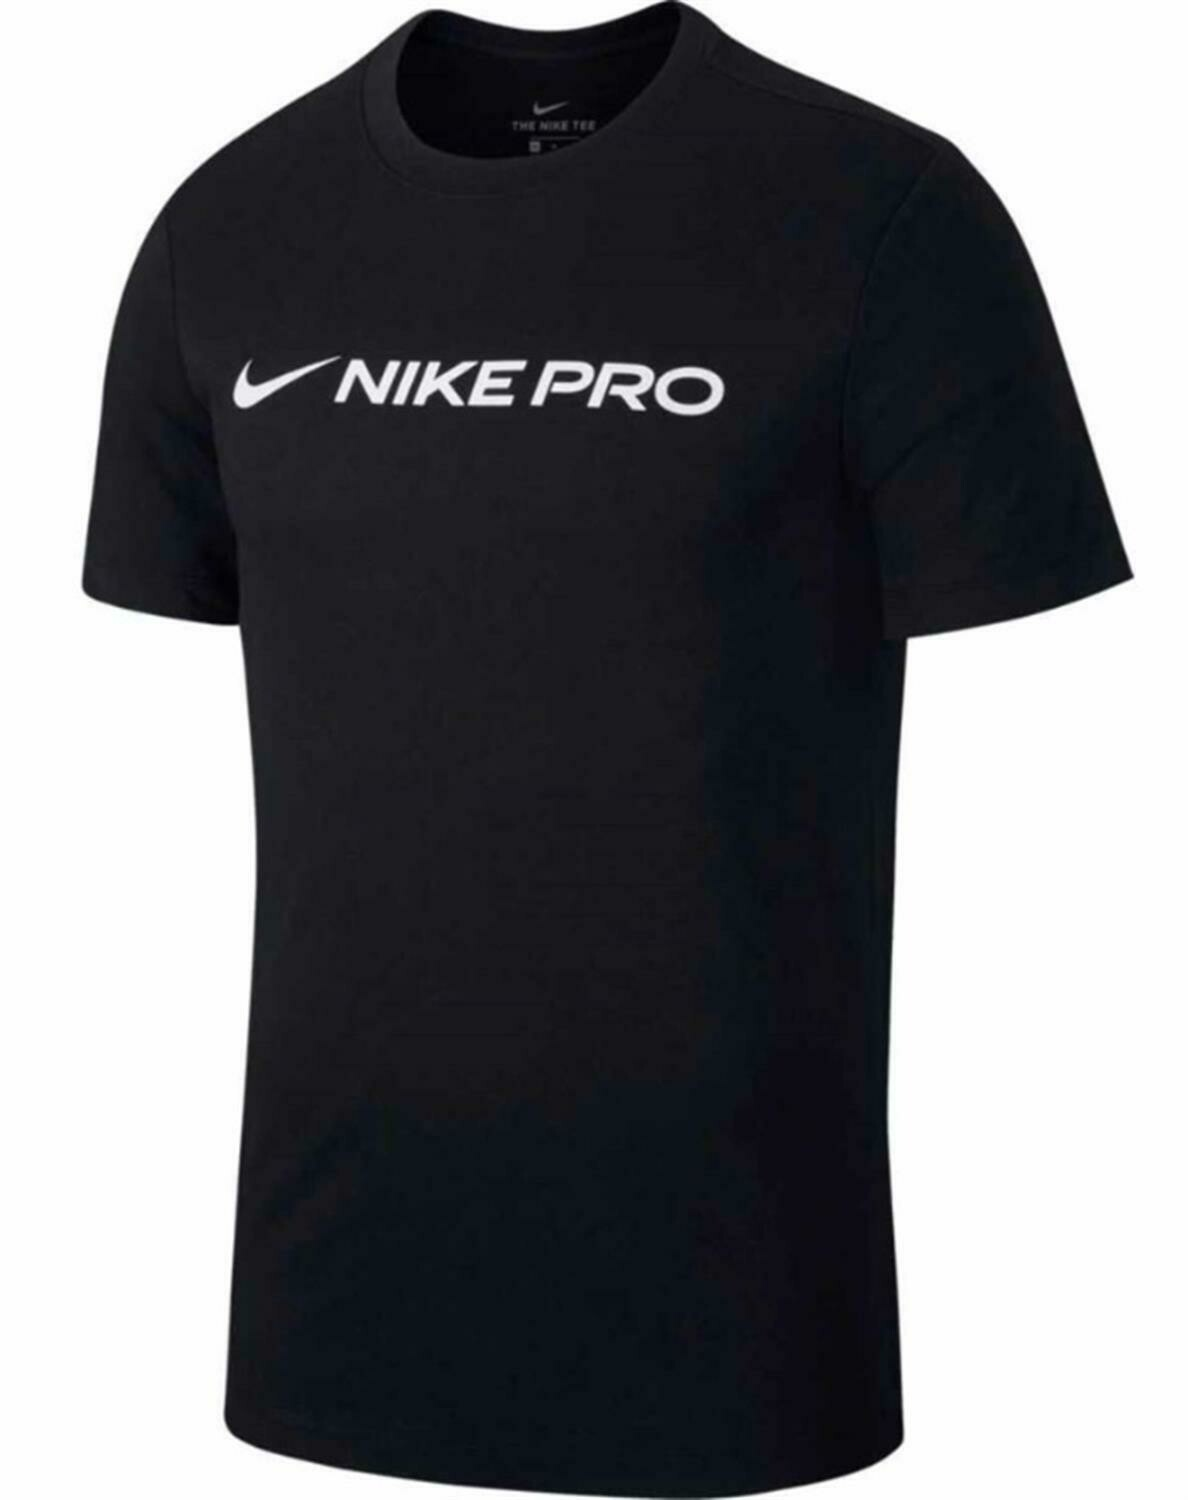 Nike Dry Fit Mens Training Tee